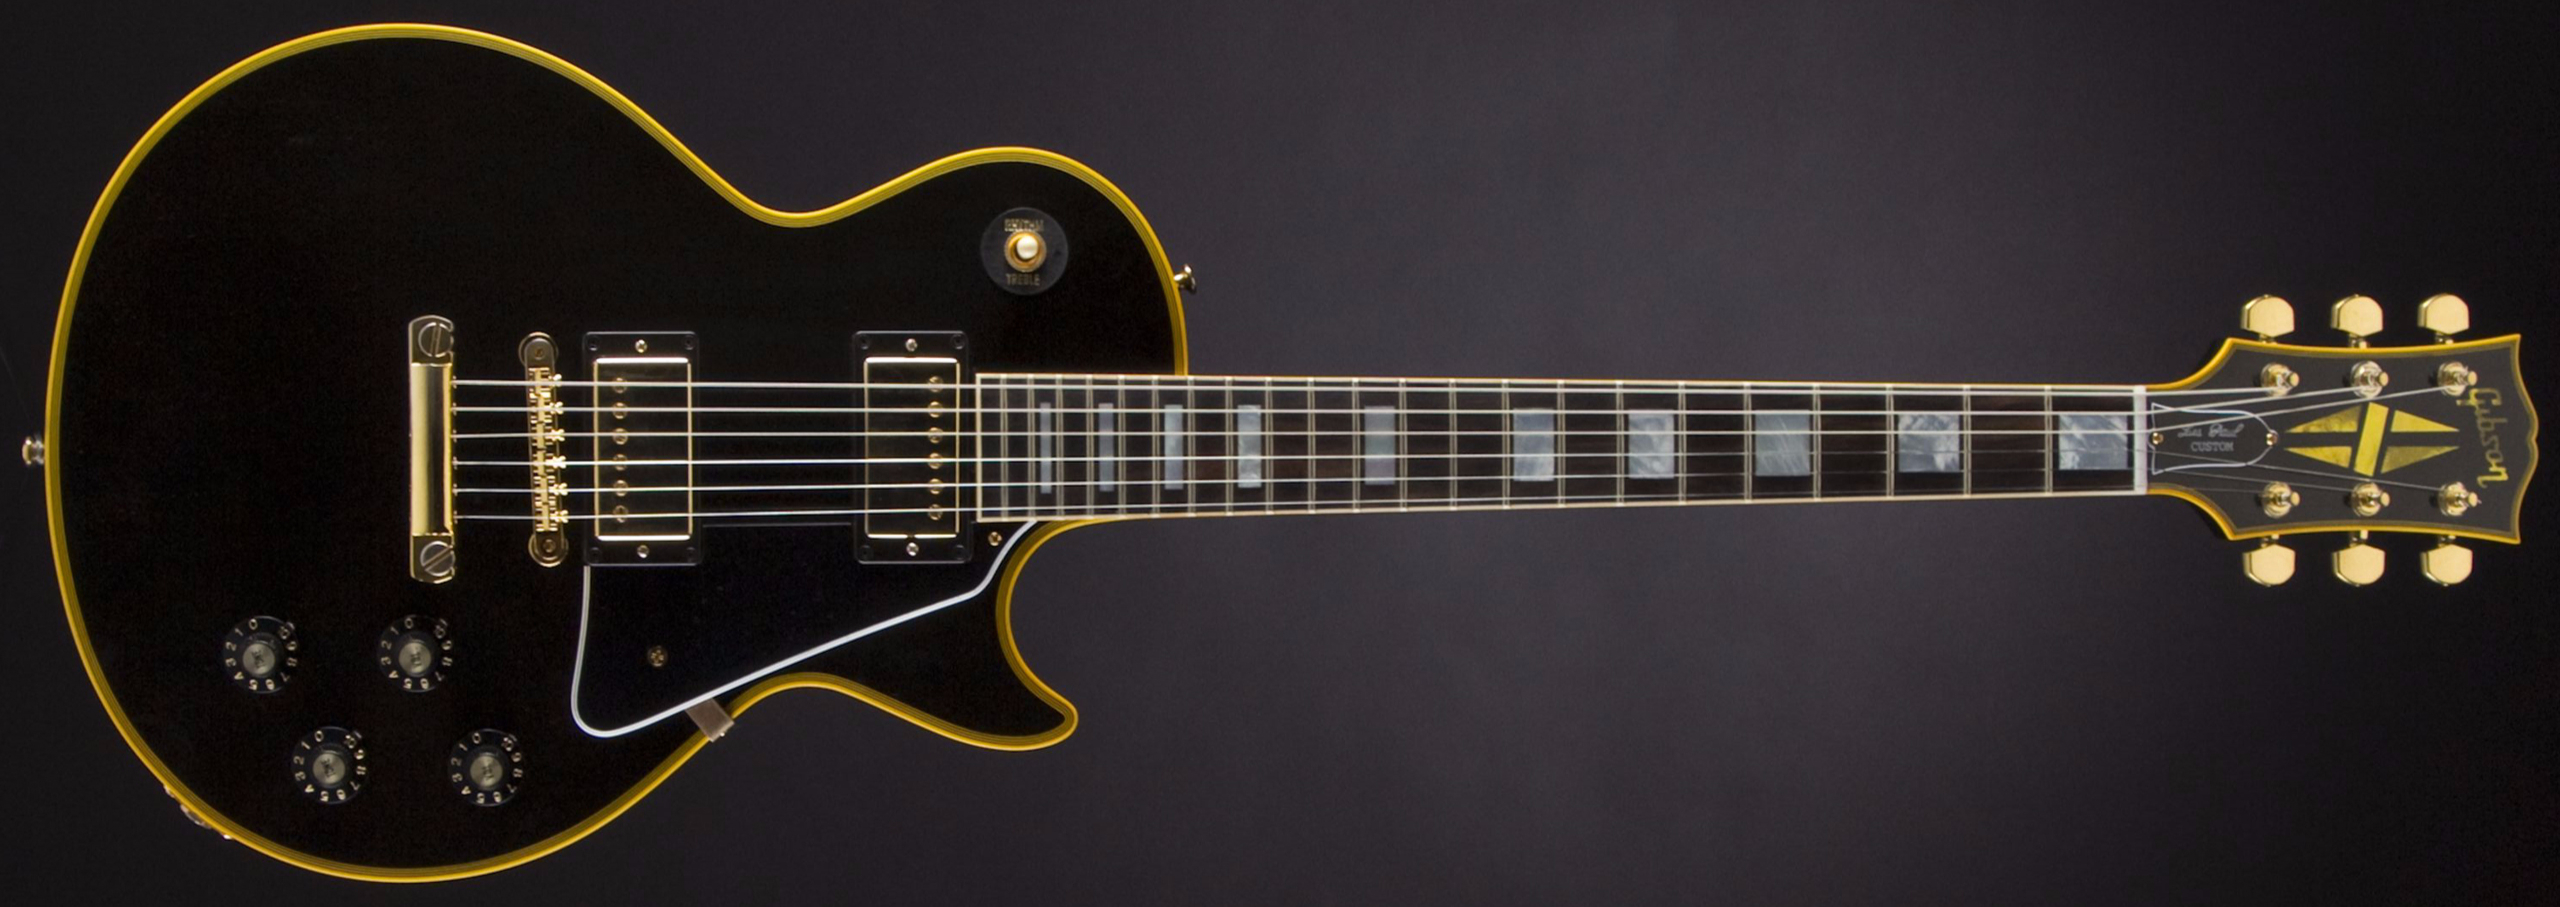 GIBSON 1974 Les Paul Custom Reissue Ebony #CS500228